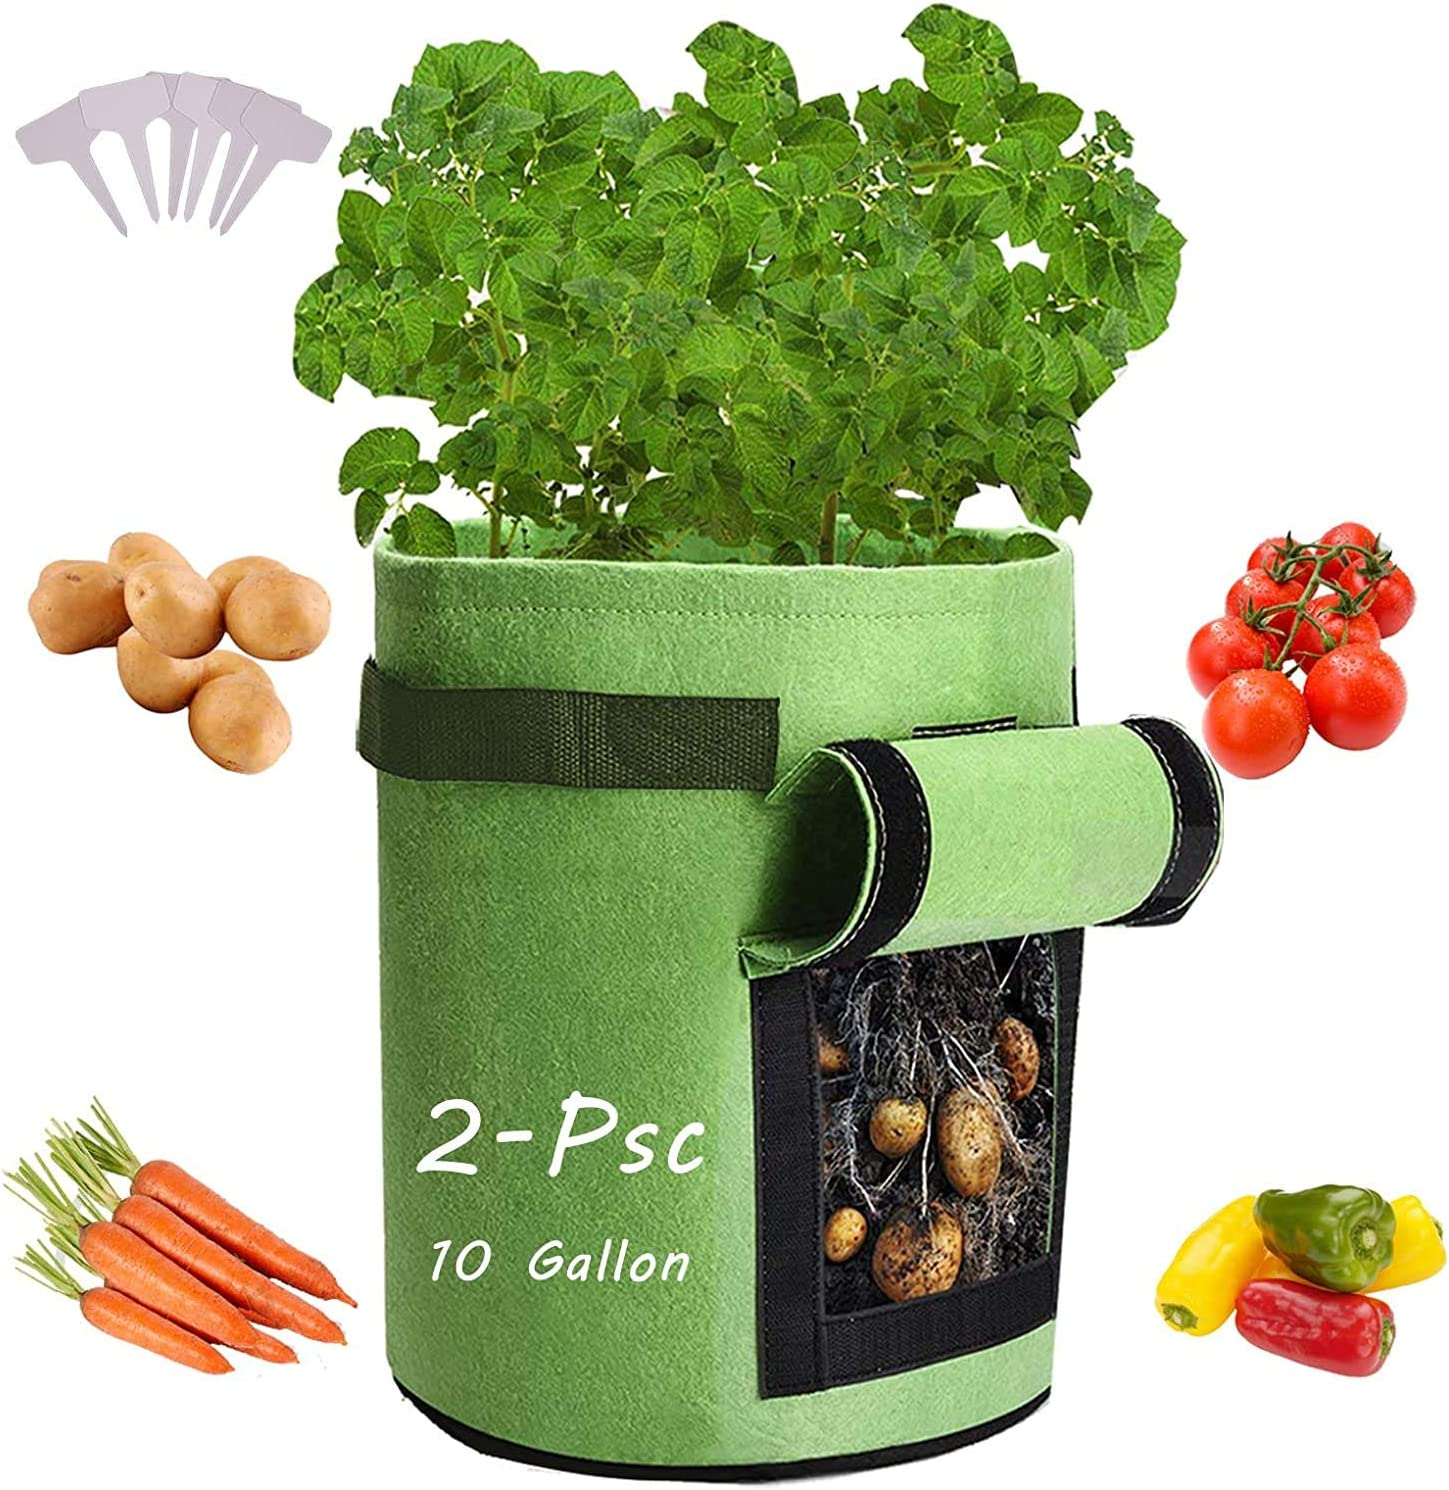 2 Pack Heavy-Duty Plant Grow Bag with Dual Handles and Velcro Window Ideal for Growing Tomatoes Onions Carrots 7 Gallon Potato Grow Bags Fruits and Vegetables